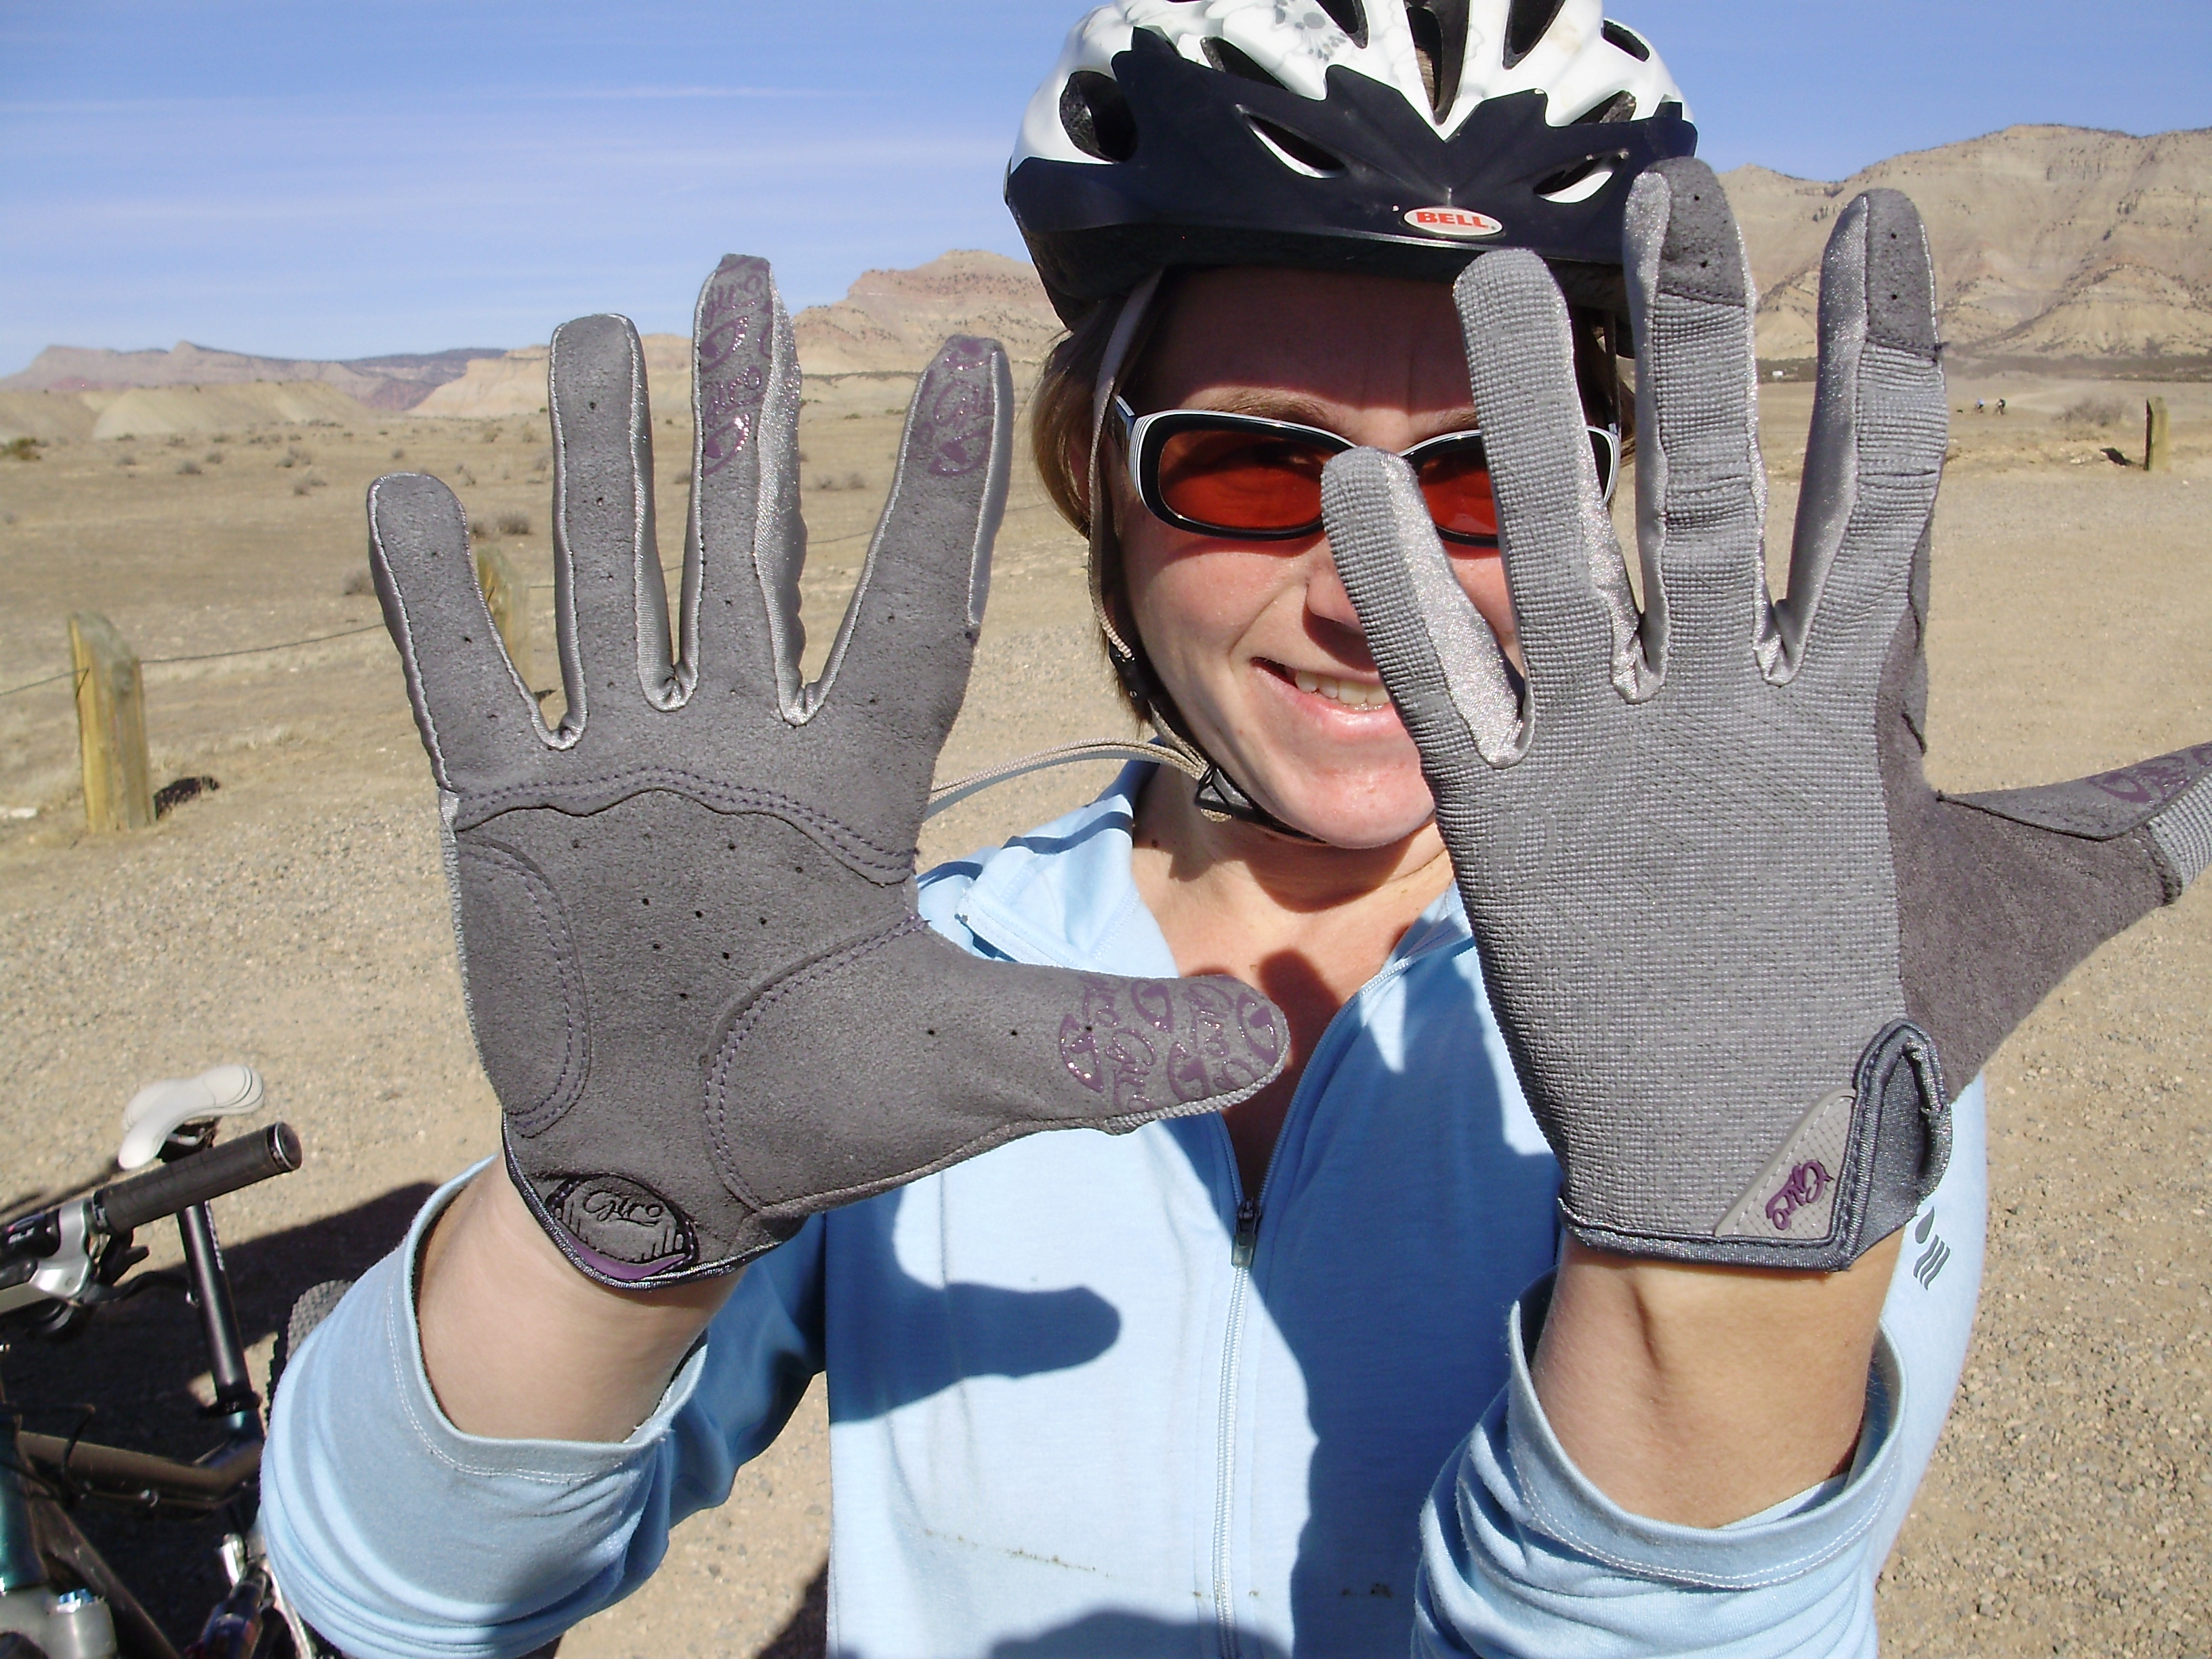 LA DND Women's Cycling Trail Gloves